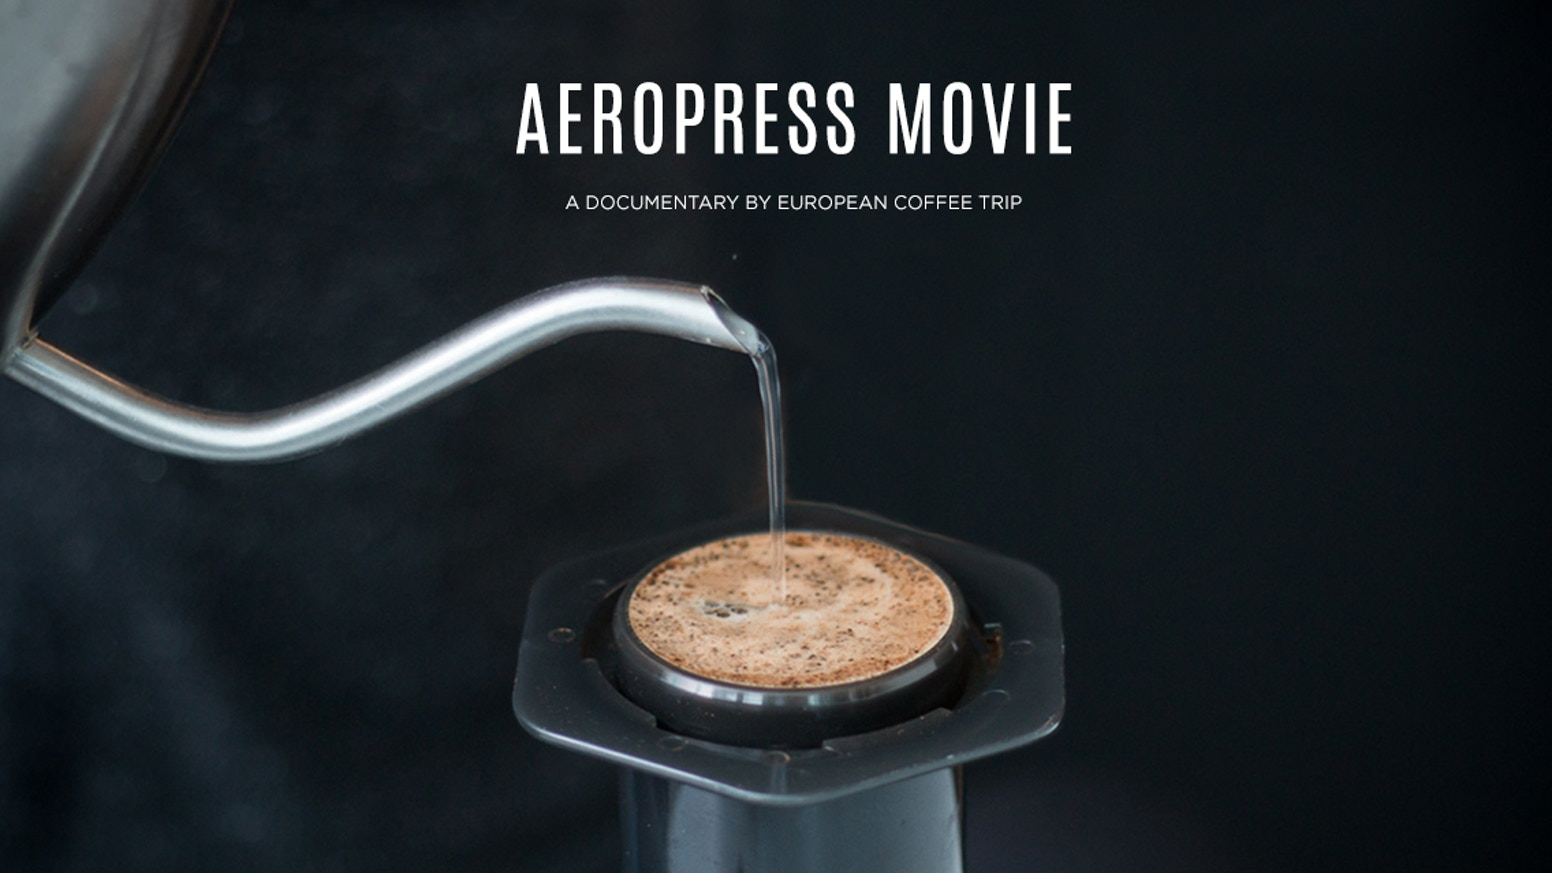 Aeropress Movie A Story Of An Iconic Coffee Maker By European Fellow Prismo For Documentary Revealing The Get To Know Its Inventor And All